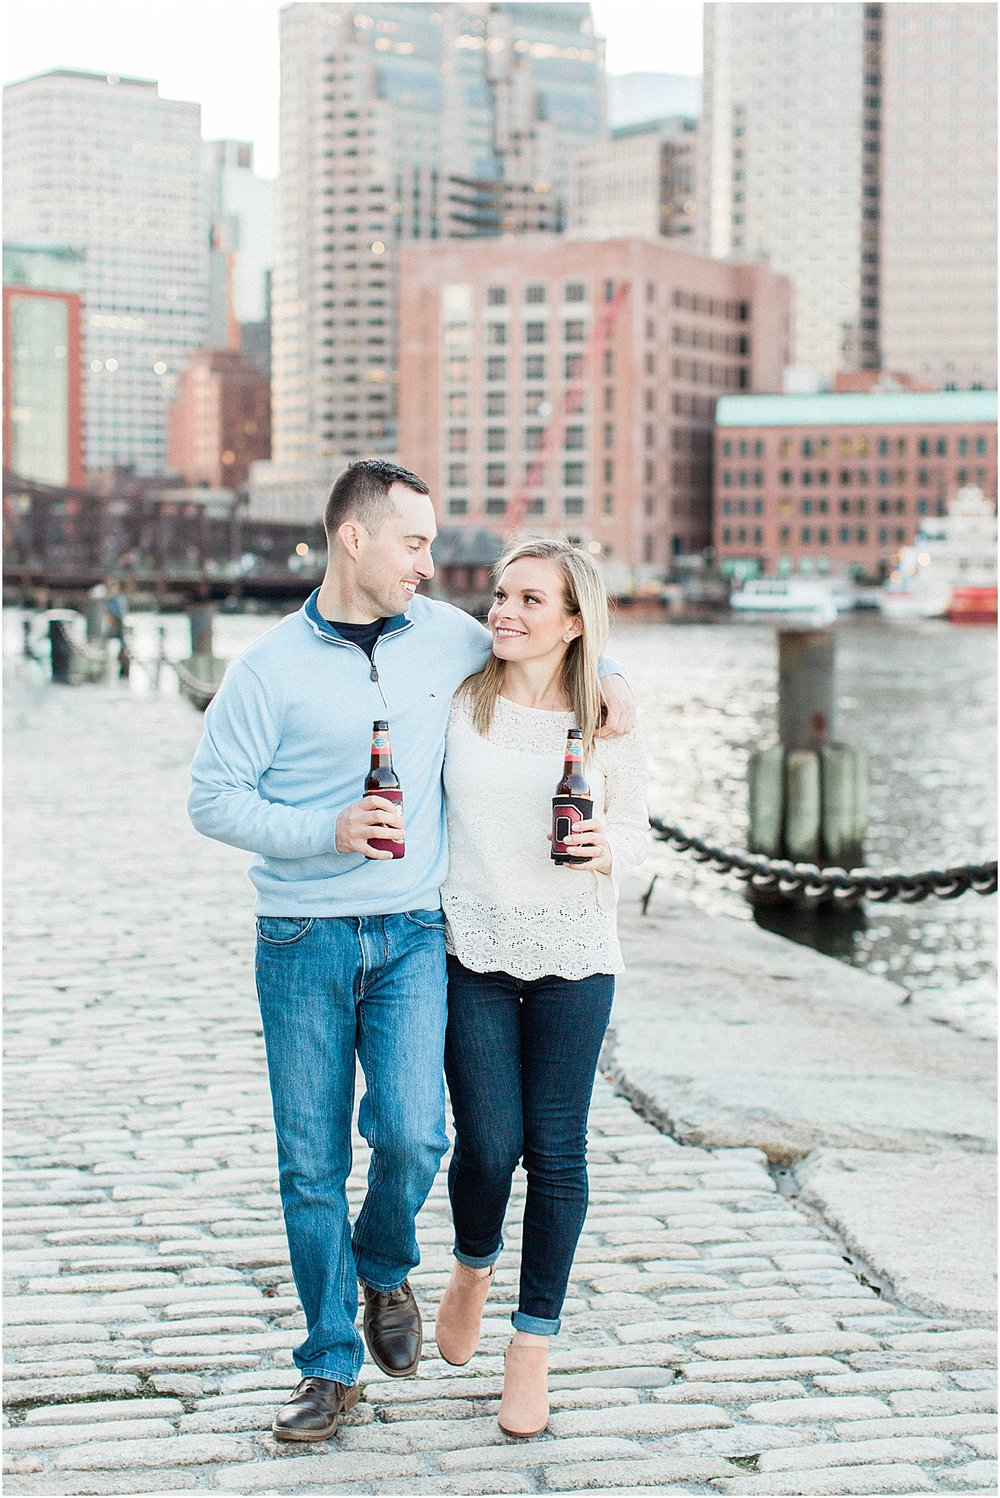 jenny_jared_beacon_hill_acorn_street_seaport_engagement_fall_cape_cod_boston_wedding_photographer_meredith_jane_photography_photo_1537.jpg